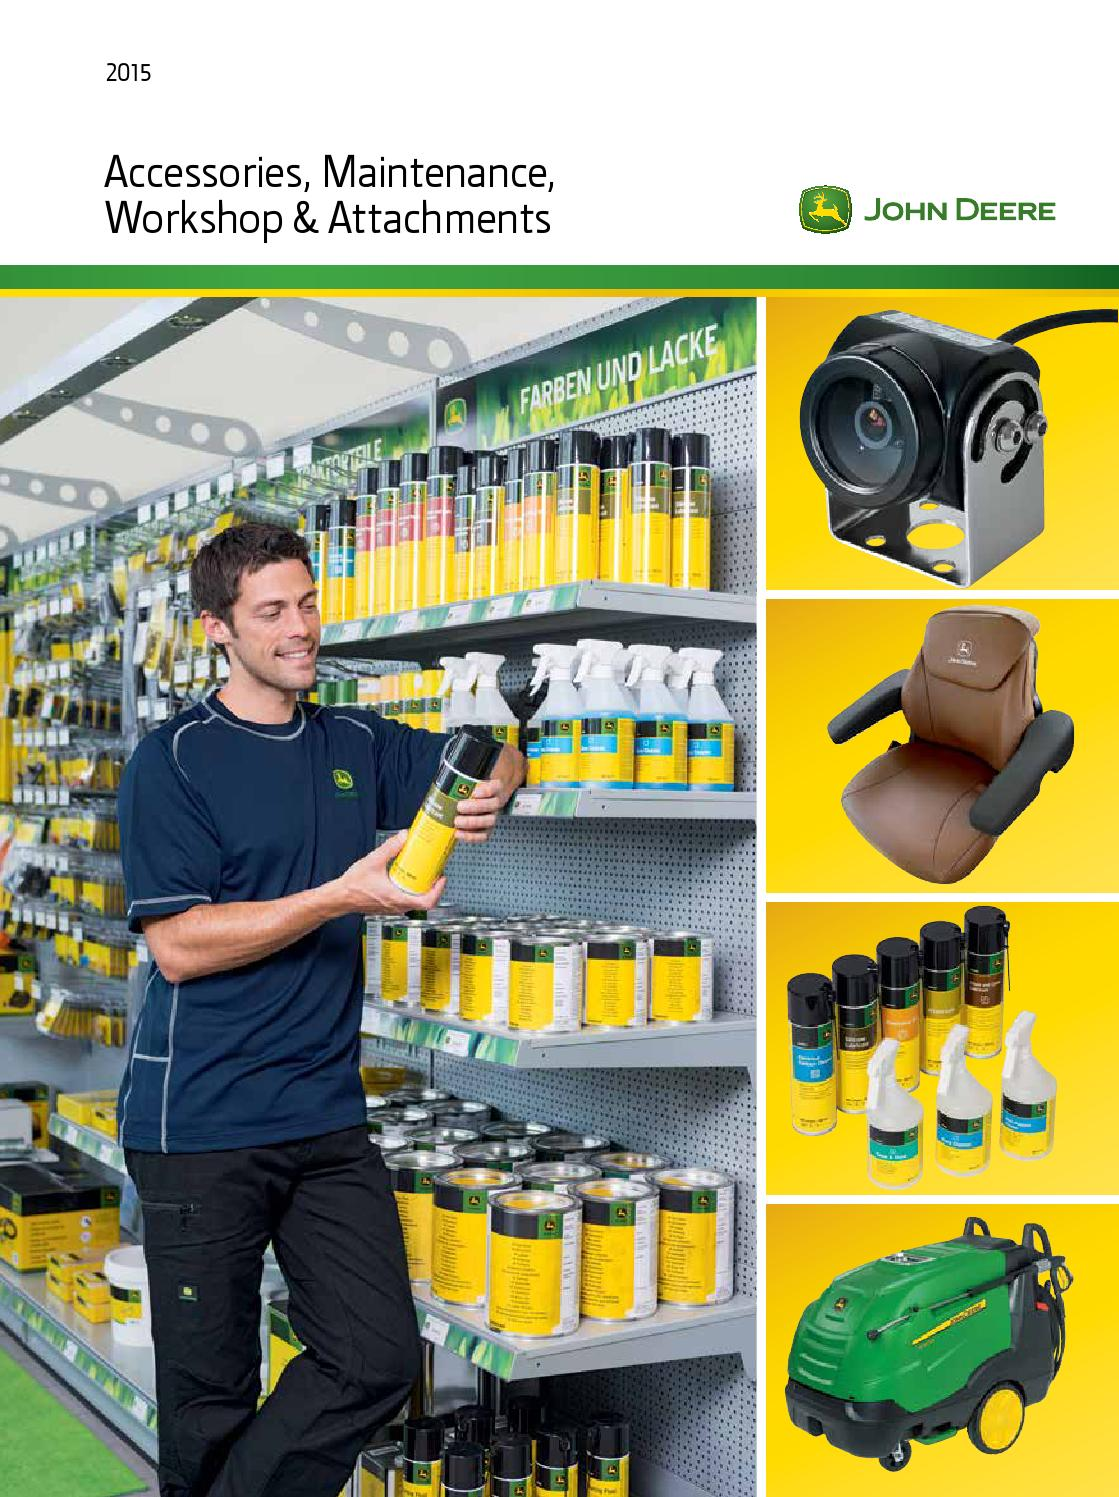 John Deere Accessories Maintenance Workshop Arrachments 2015 By 4500c Fuse Box Diagram Semler Agro A S Issuu